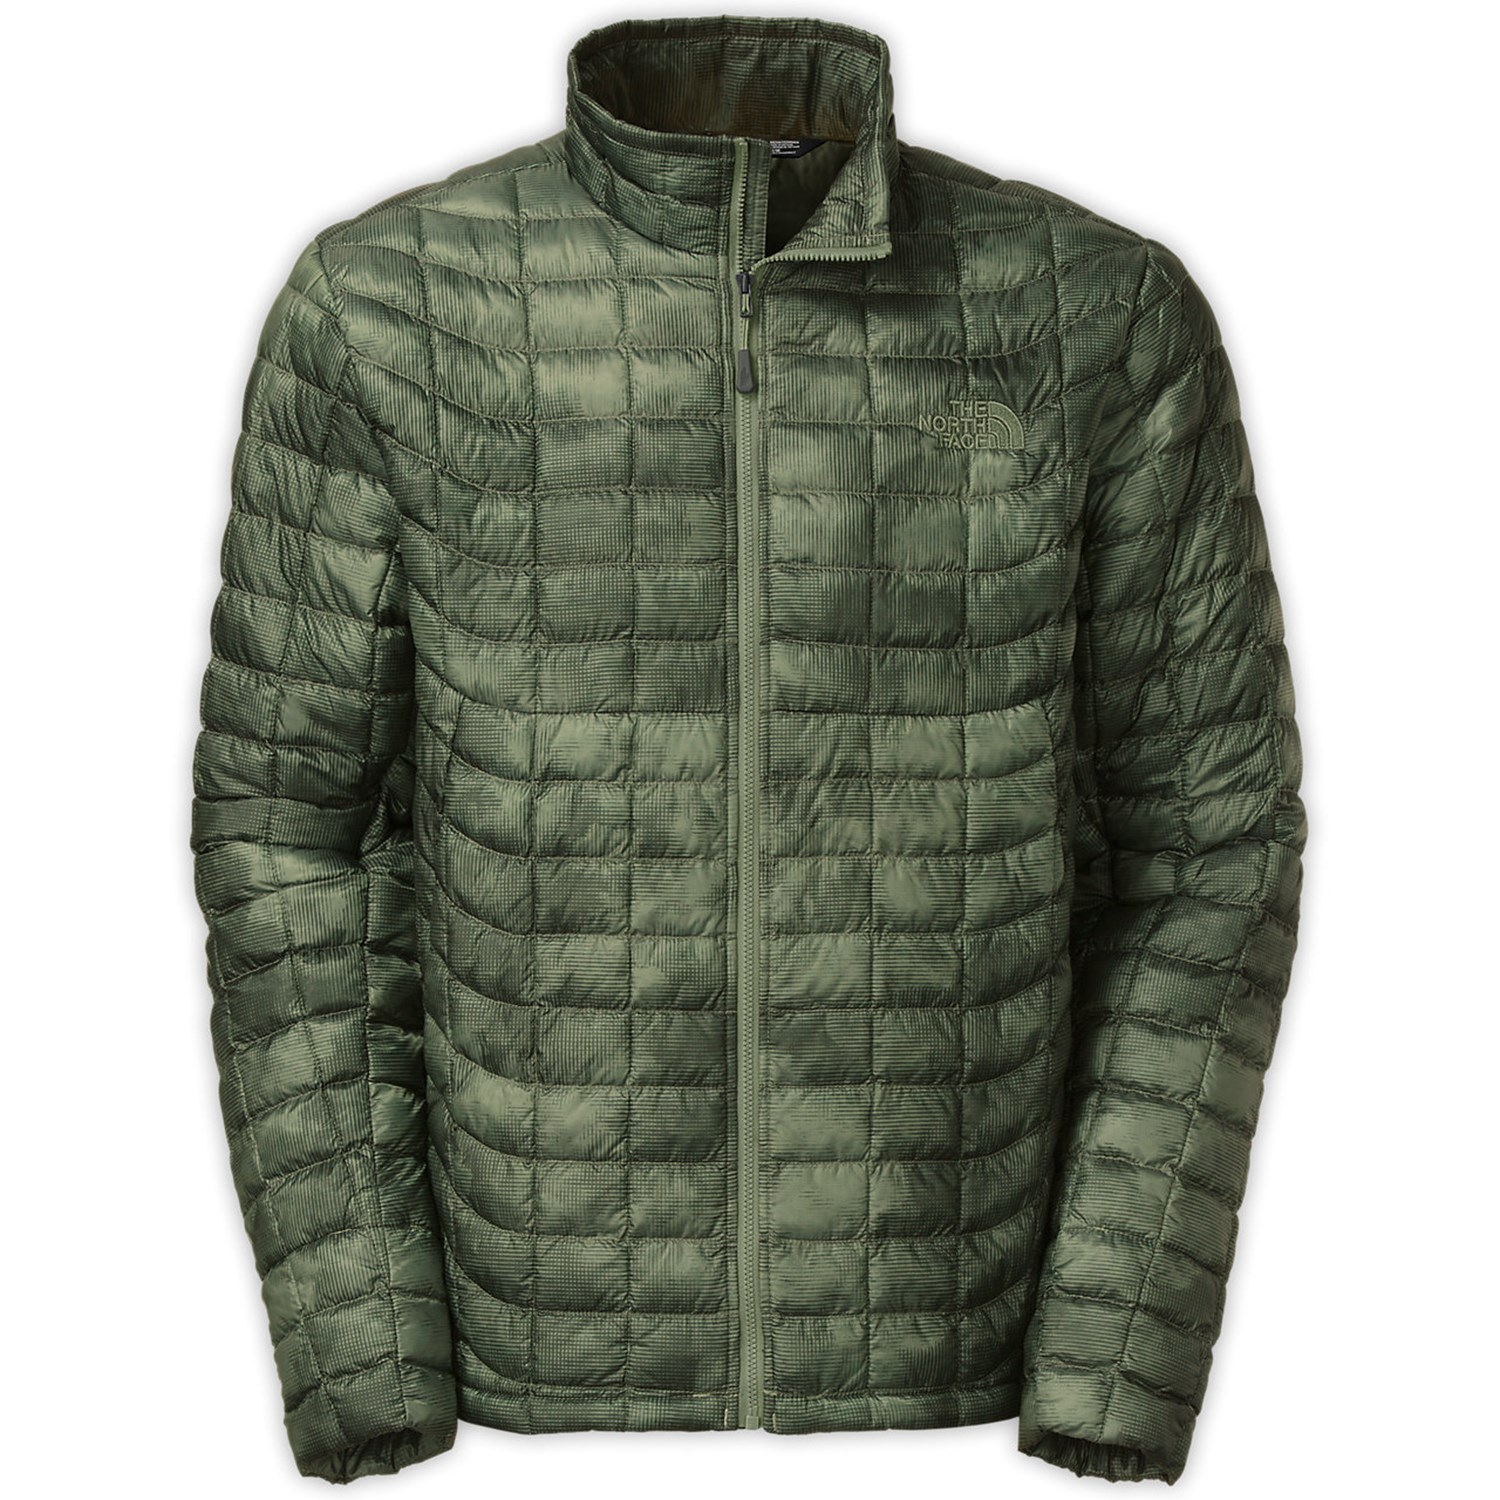 8f0cb022a The North Face ThermoBall Full Zip Jacket